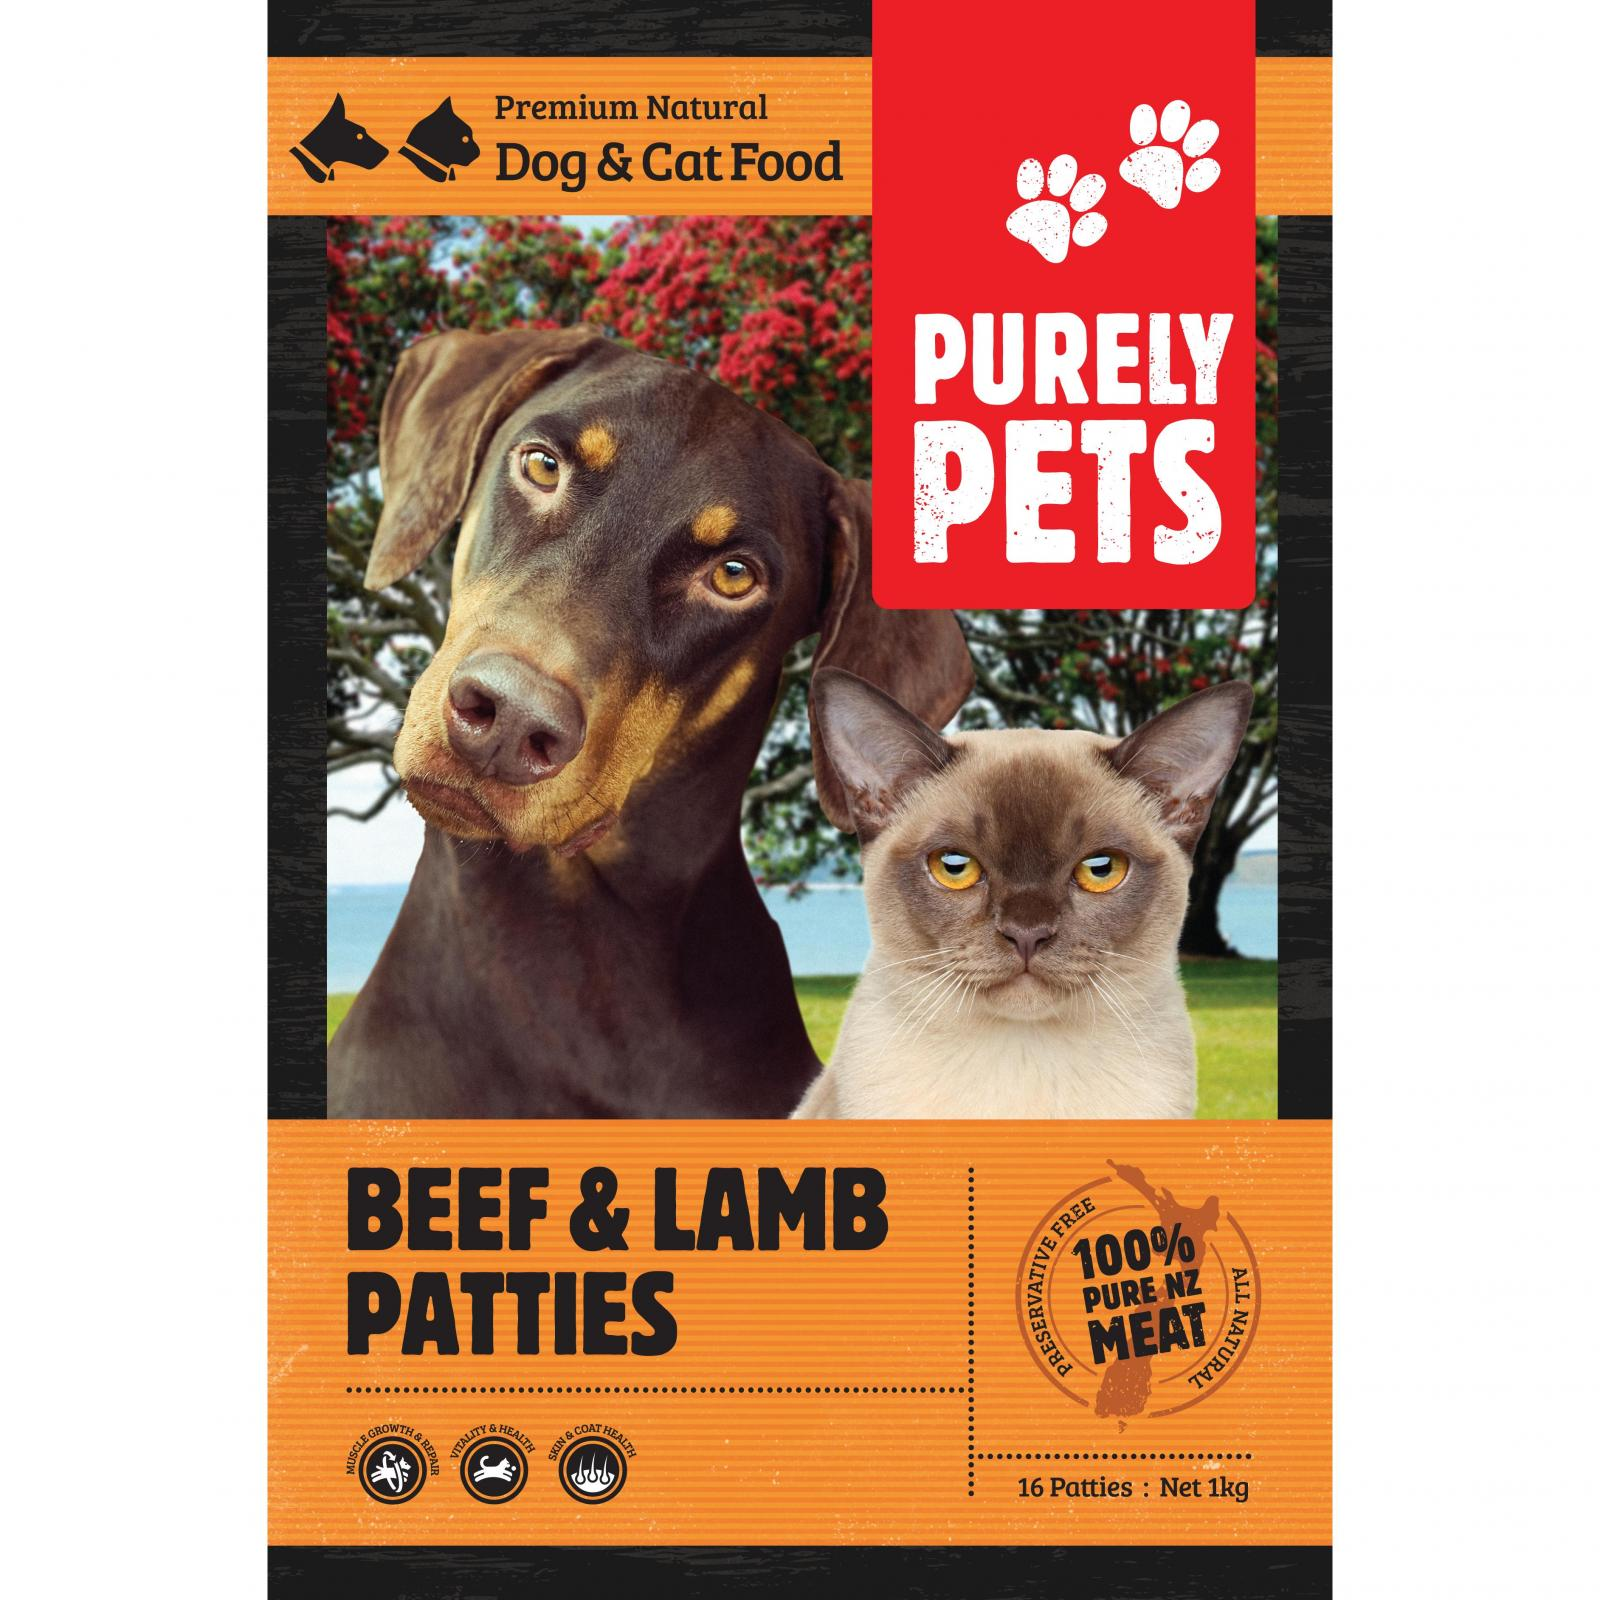 PURELY PETS Purely Pets Frozen Beef & Lamb Patties